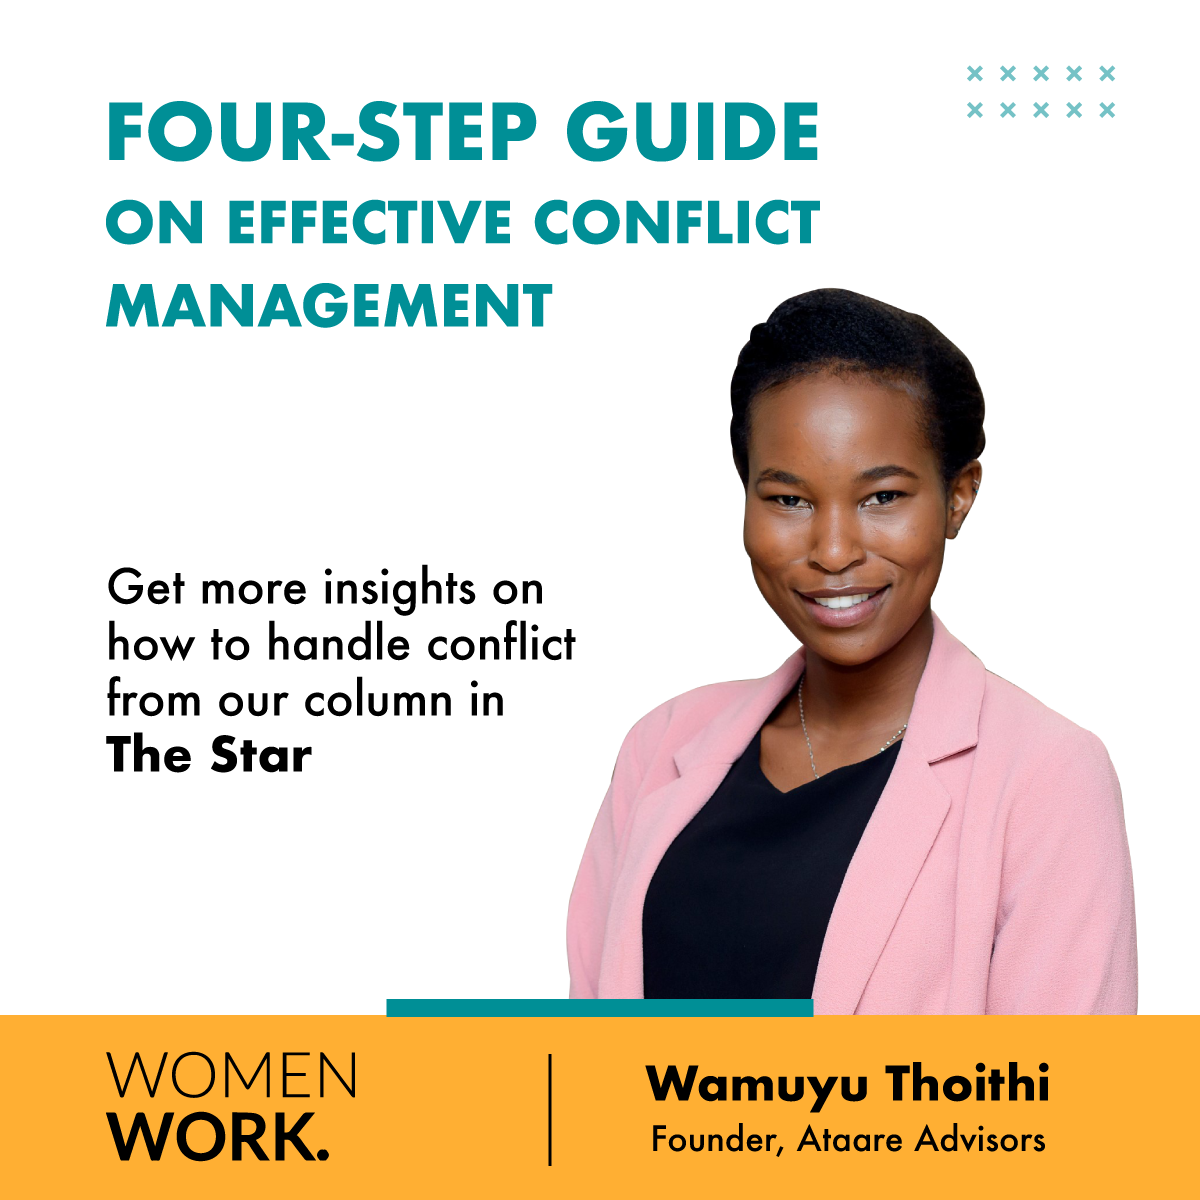 a poster on the four step conflict management guide by Wamuyu in the WomenWork column in The Star